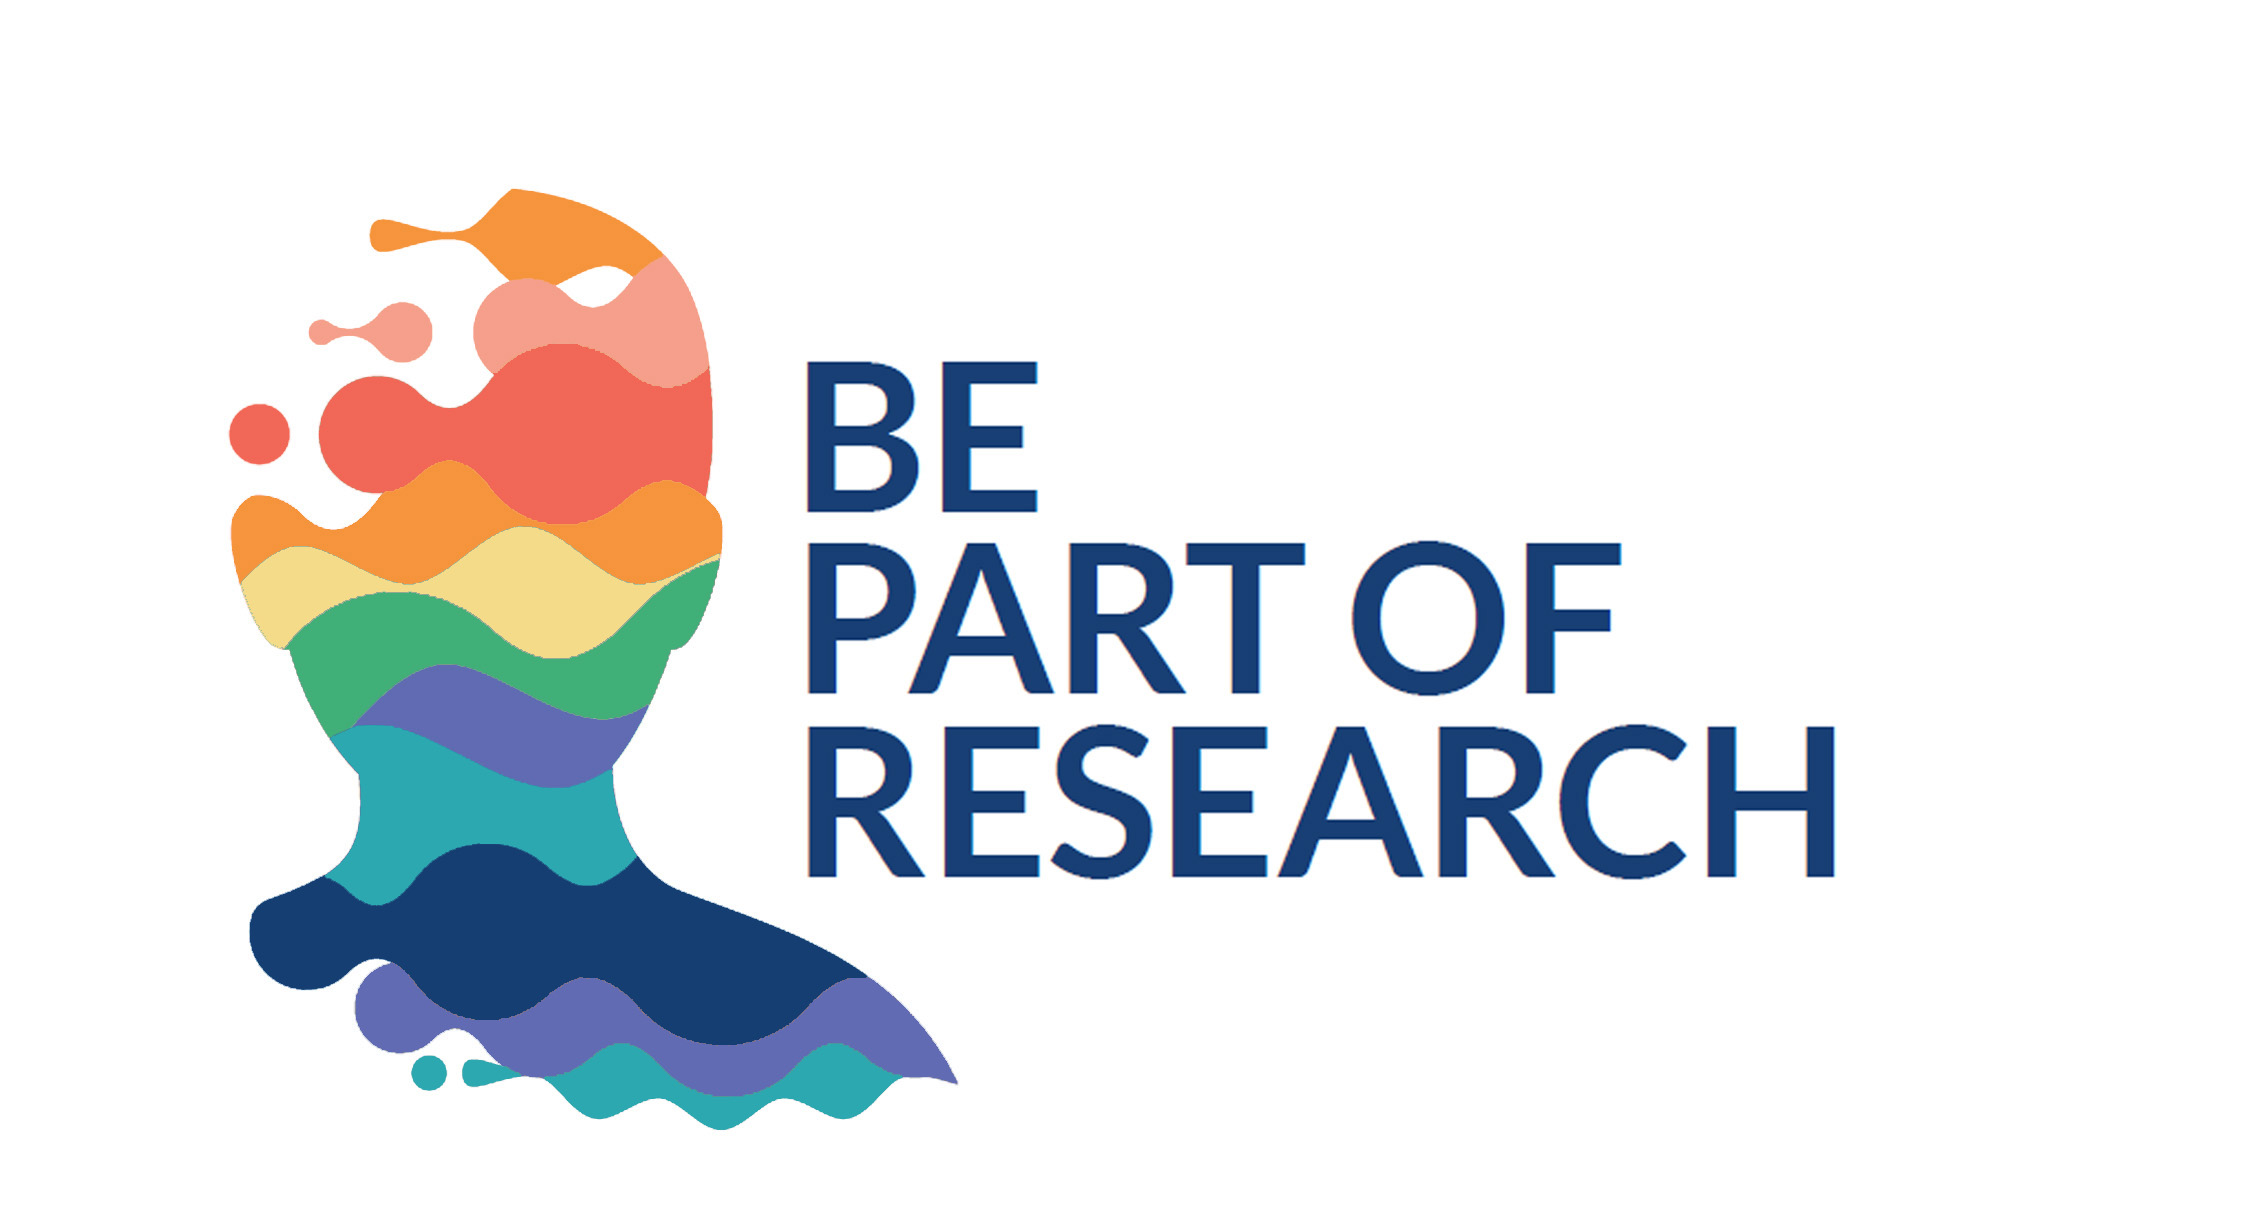 Be part of research